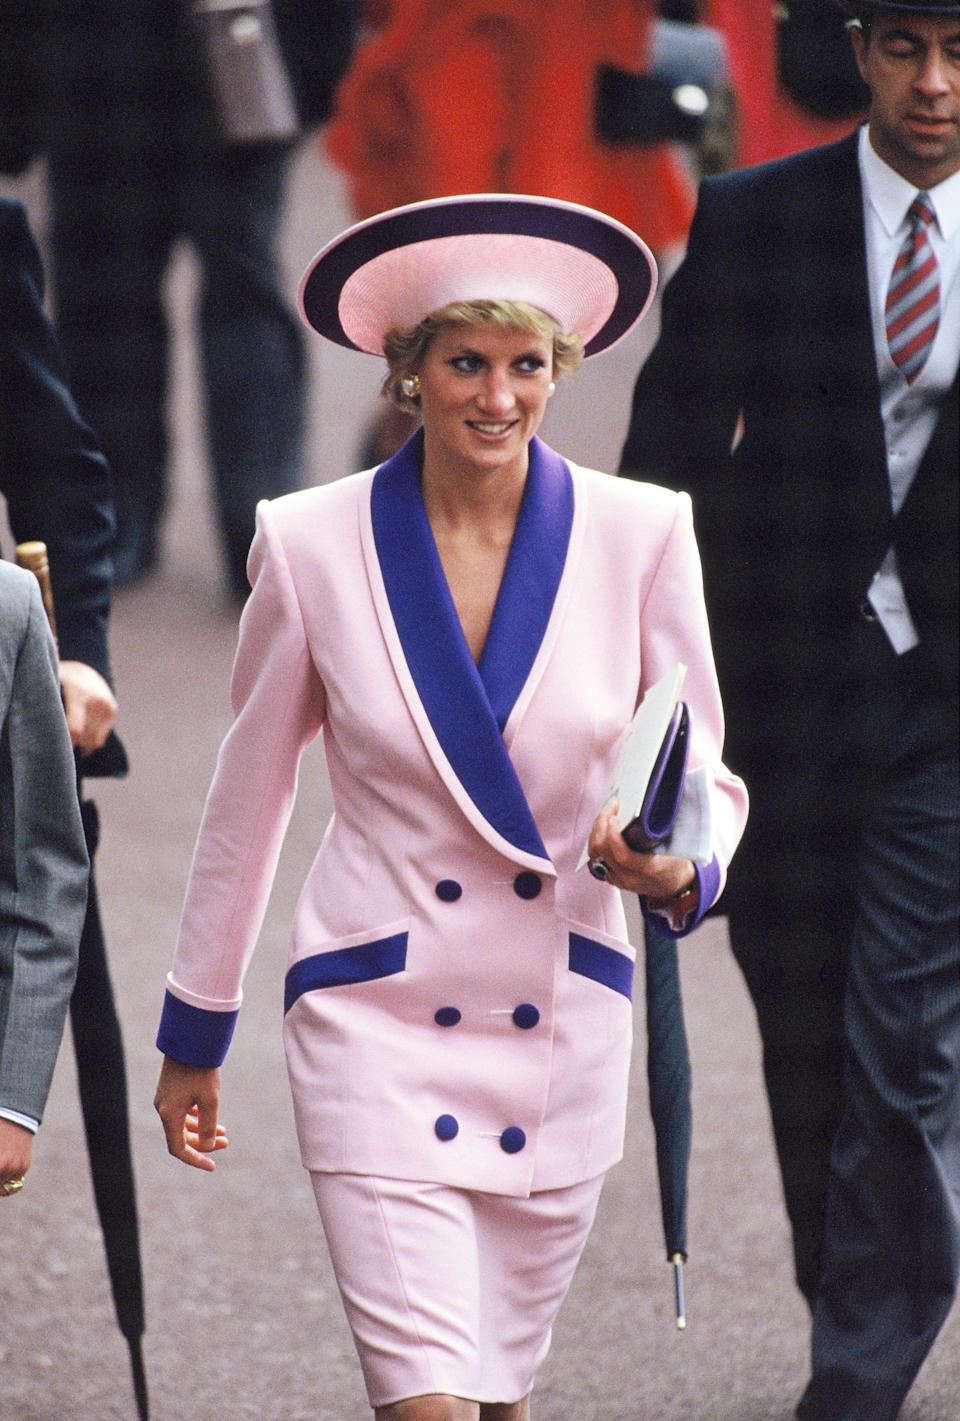 <p>Princess of Wales attends the second day of Royal Ascot in 1990 wearing a now-infamous powder pink suit with purple details. <em>[Photo: Getty]</em> </p>